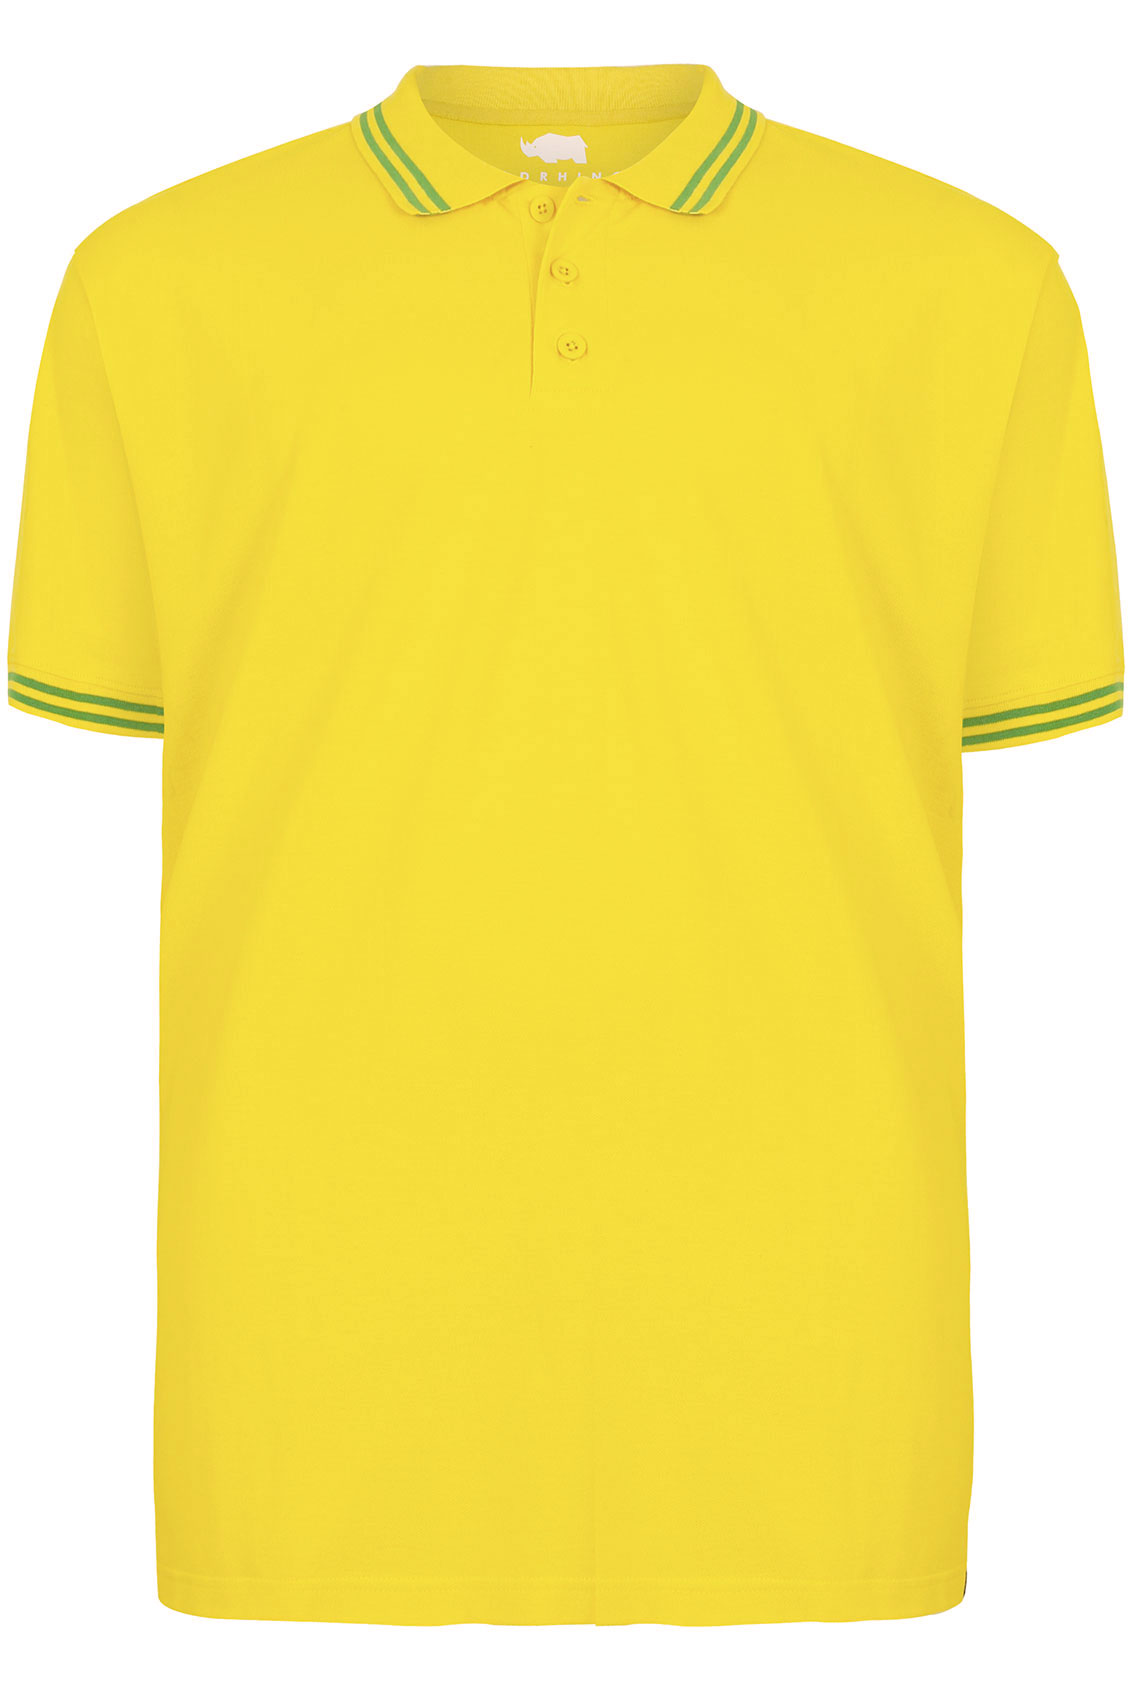 Badrhino Yellow Short Sleeved Polo Shirt Tall Plus Size